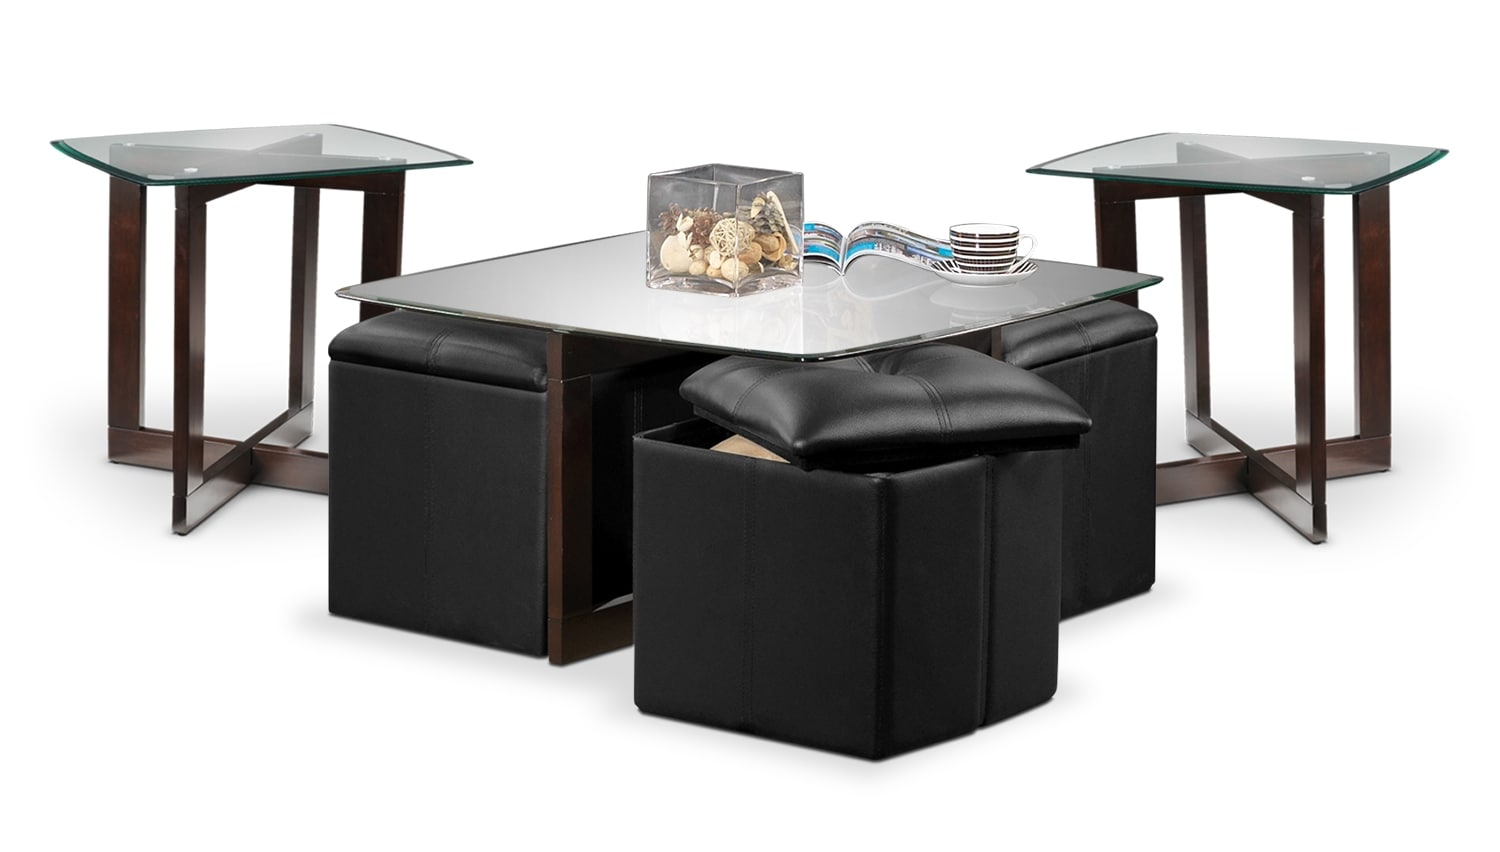 Neera Coffee Table, Two End Tables and Ottomans - Chocolate and Black